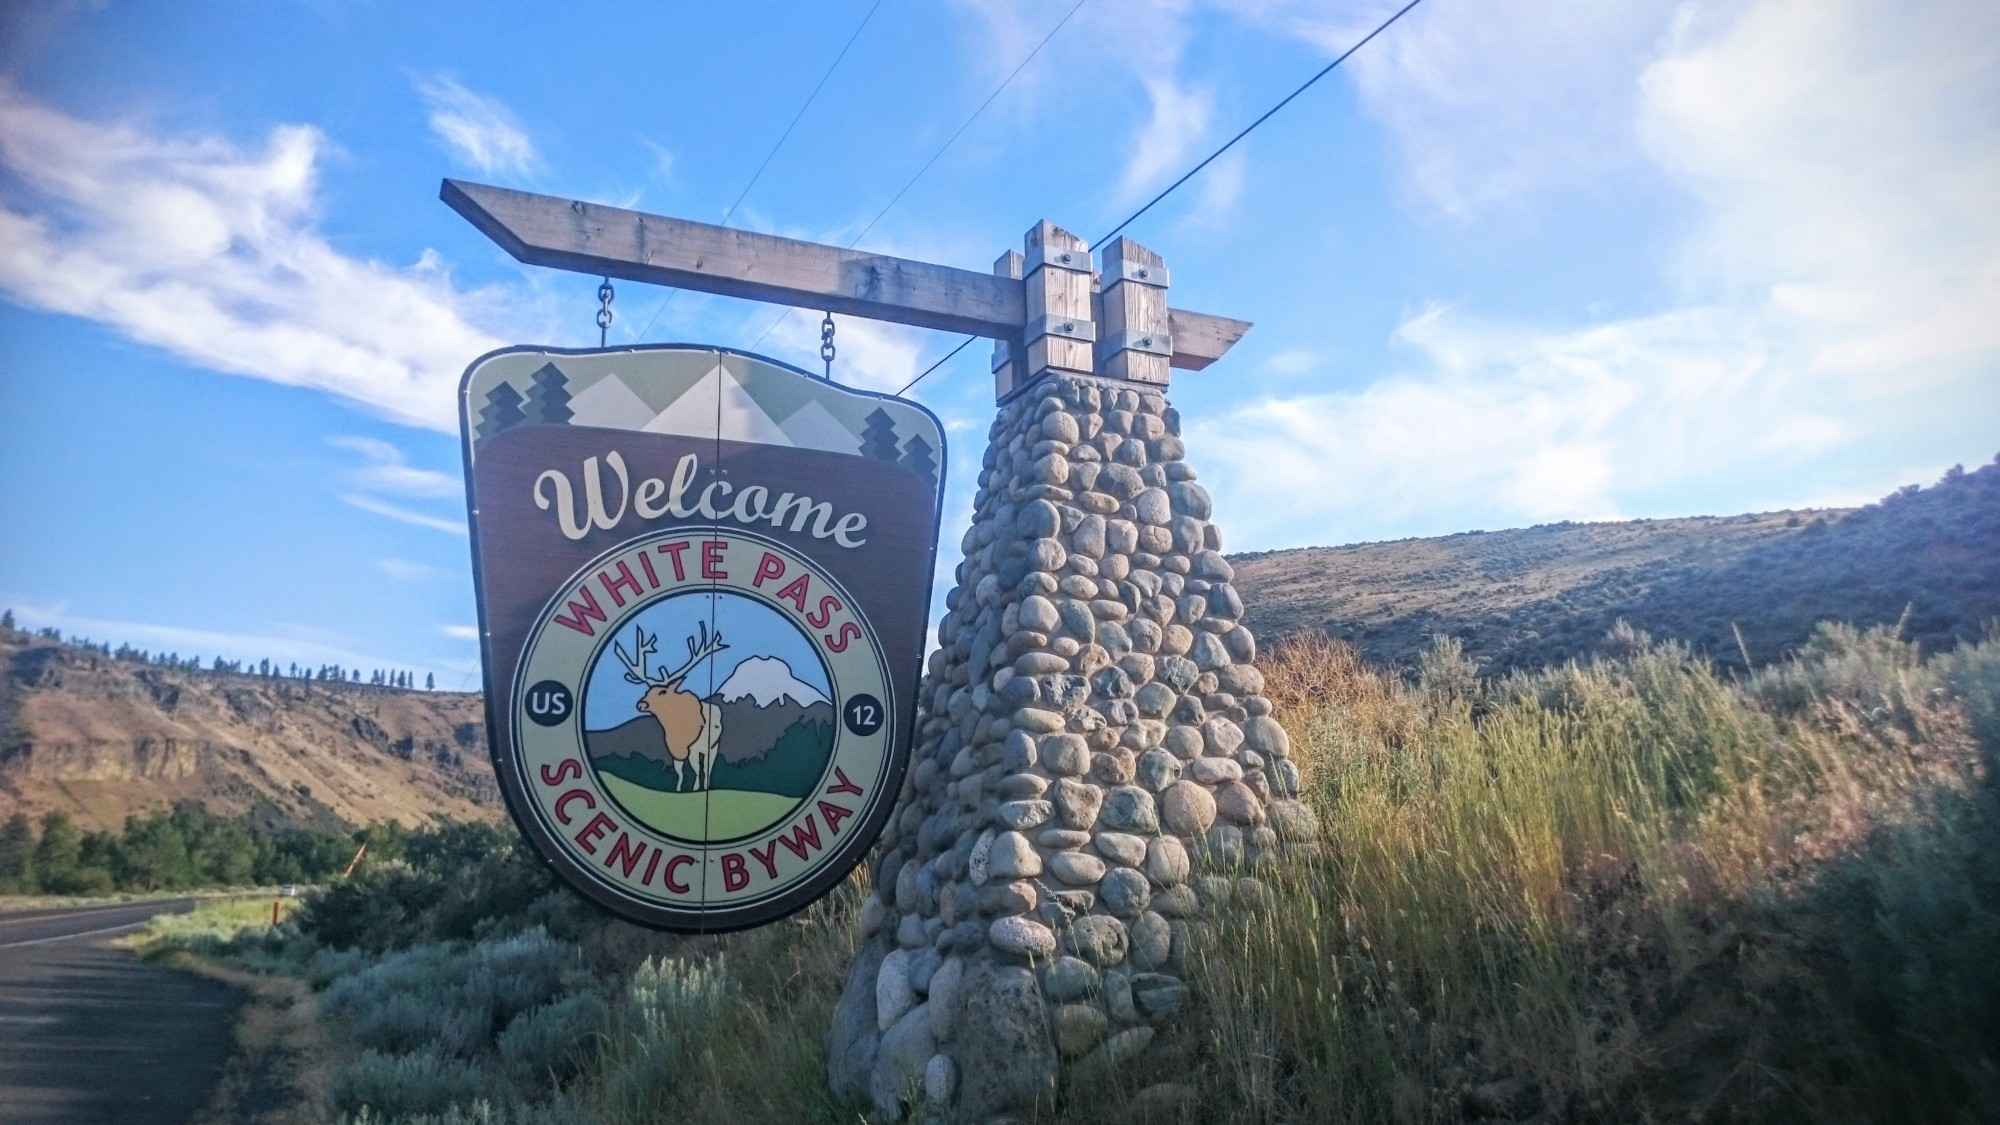 Entering the White Pass Scenic Byway